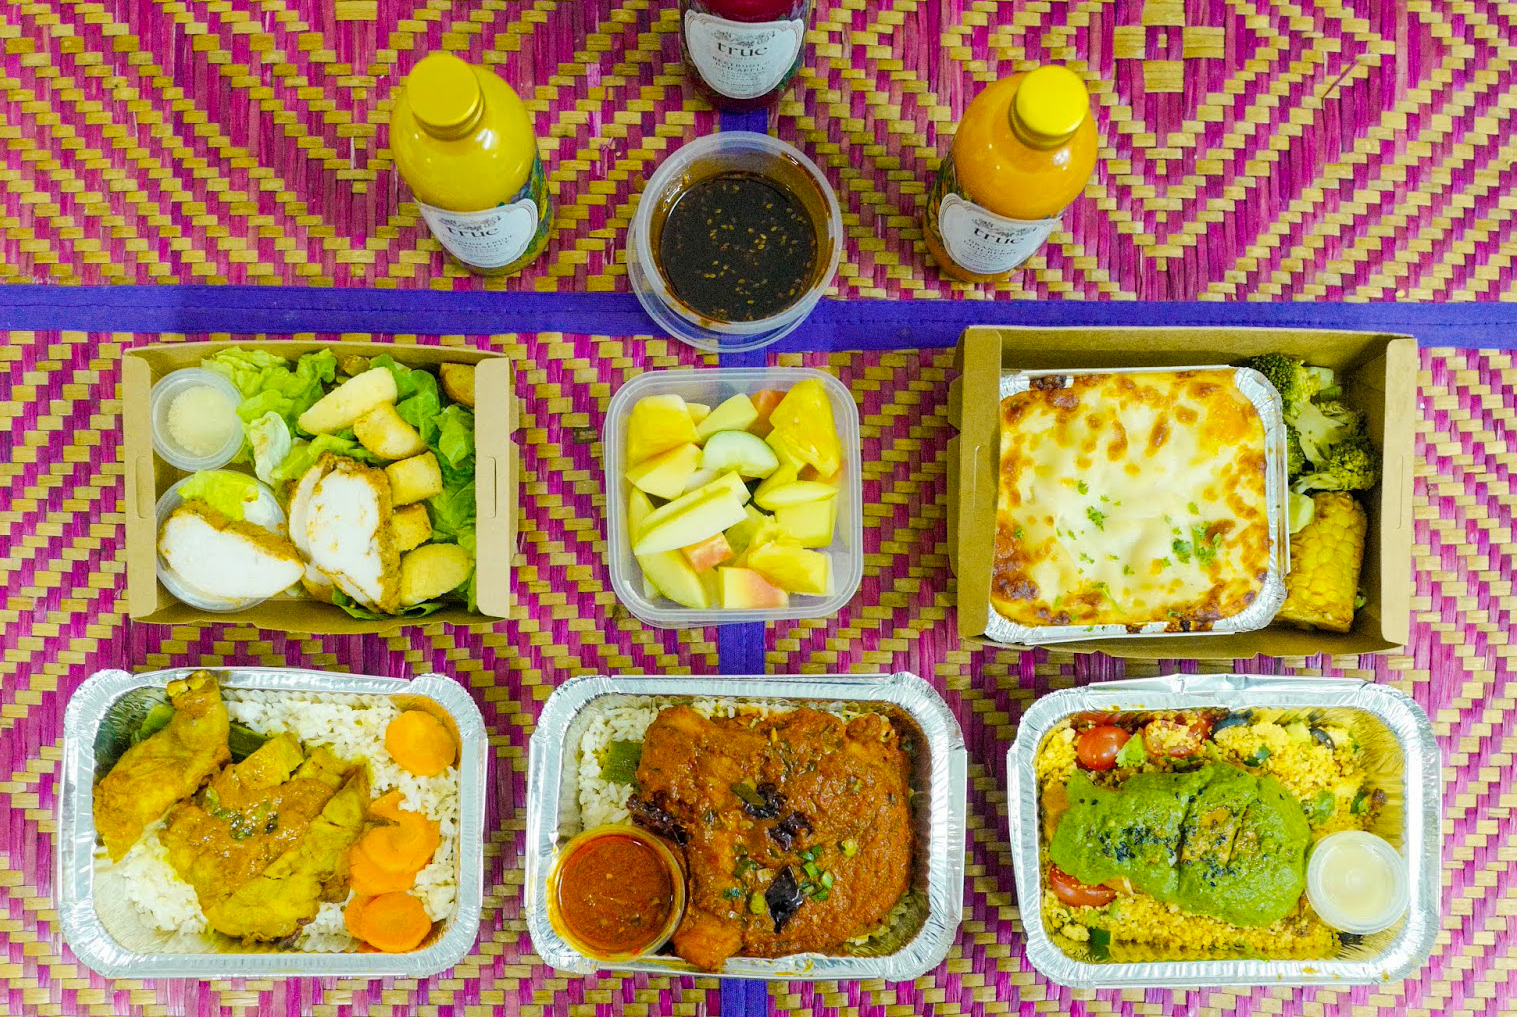 dahmakan: chef-made food deliveries